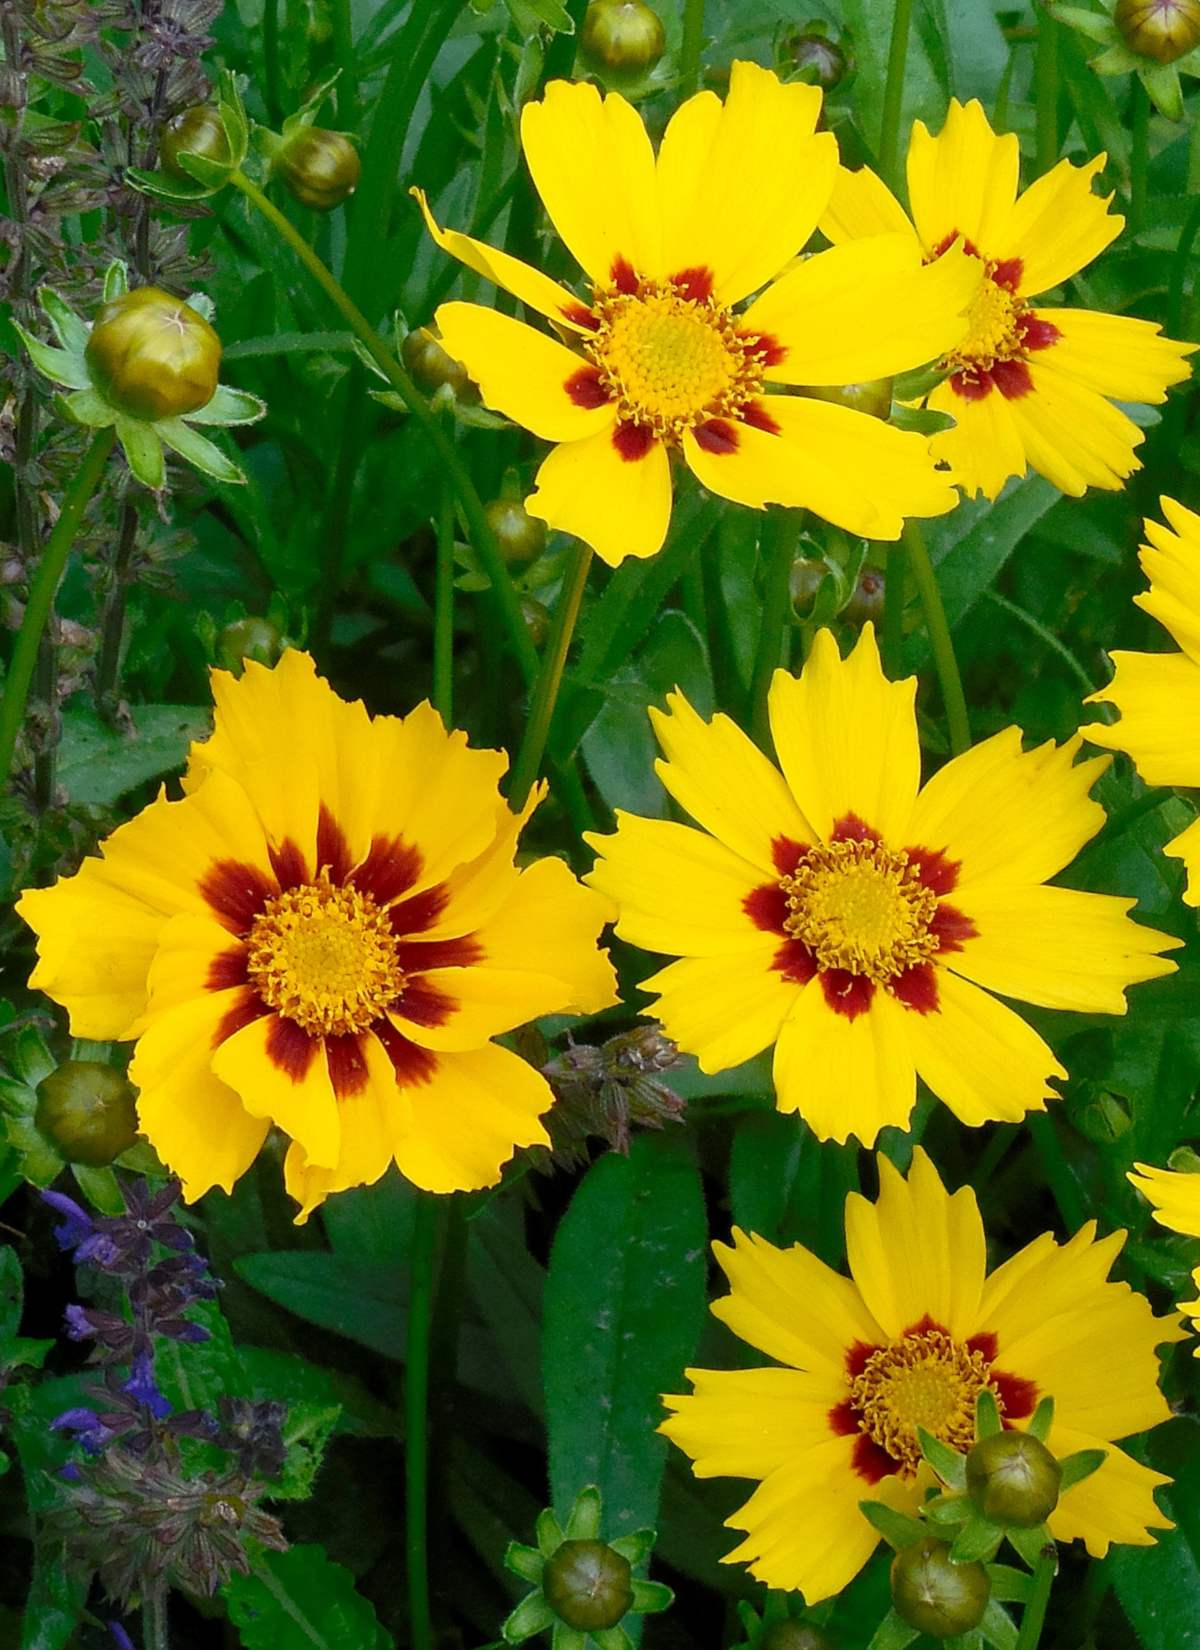 Coreopsis, Calliopsis, tickseed, the charming eye